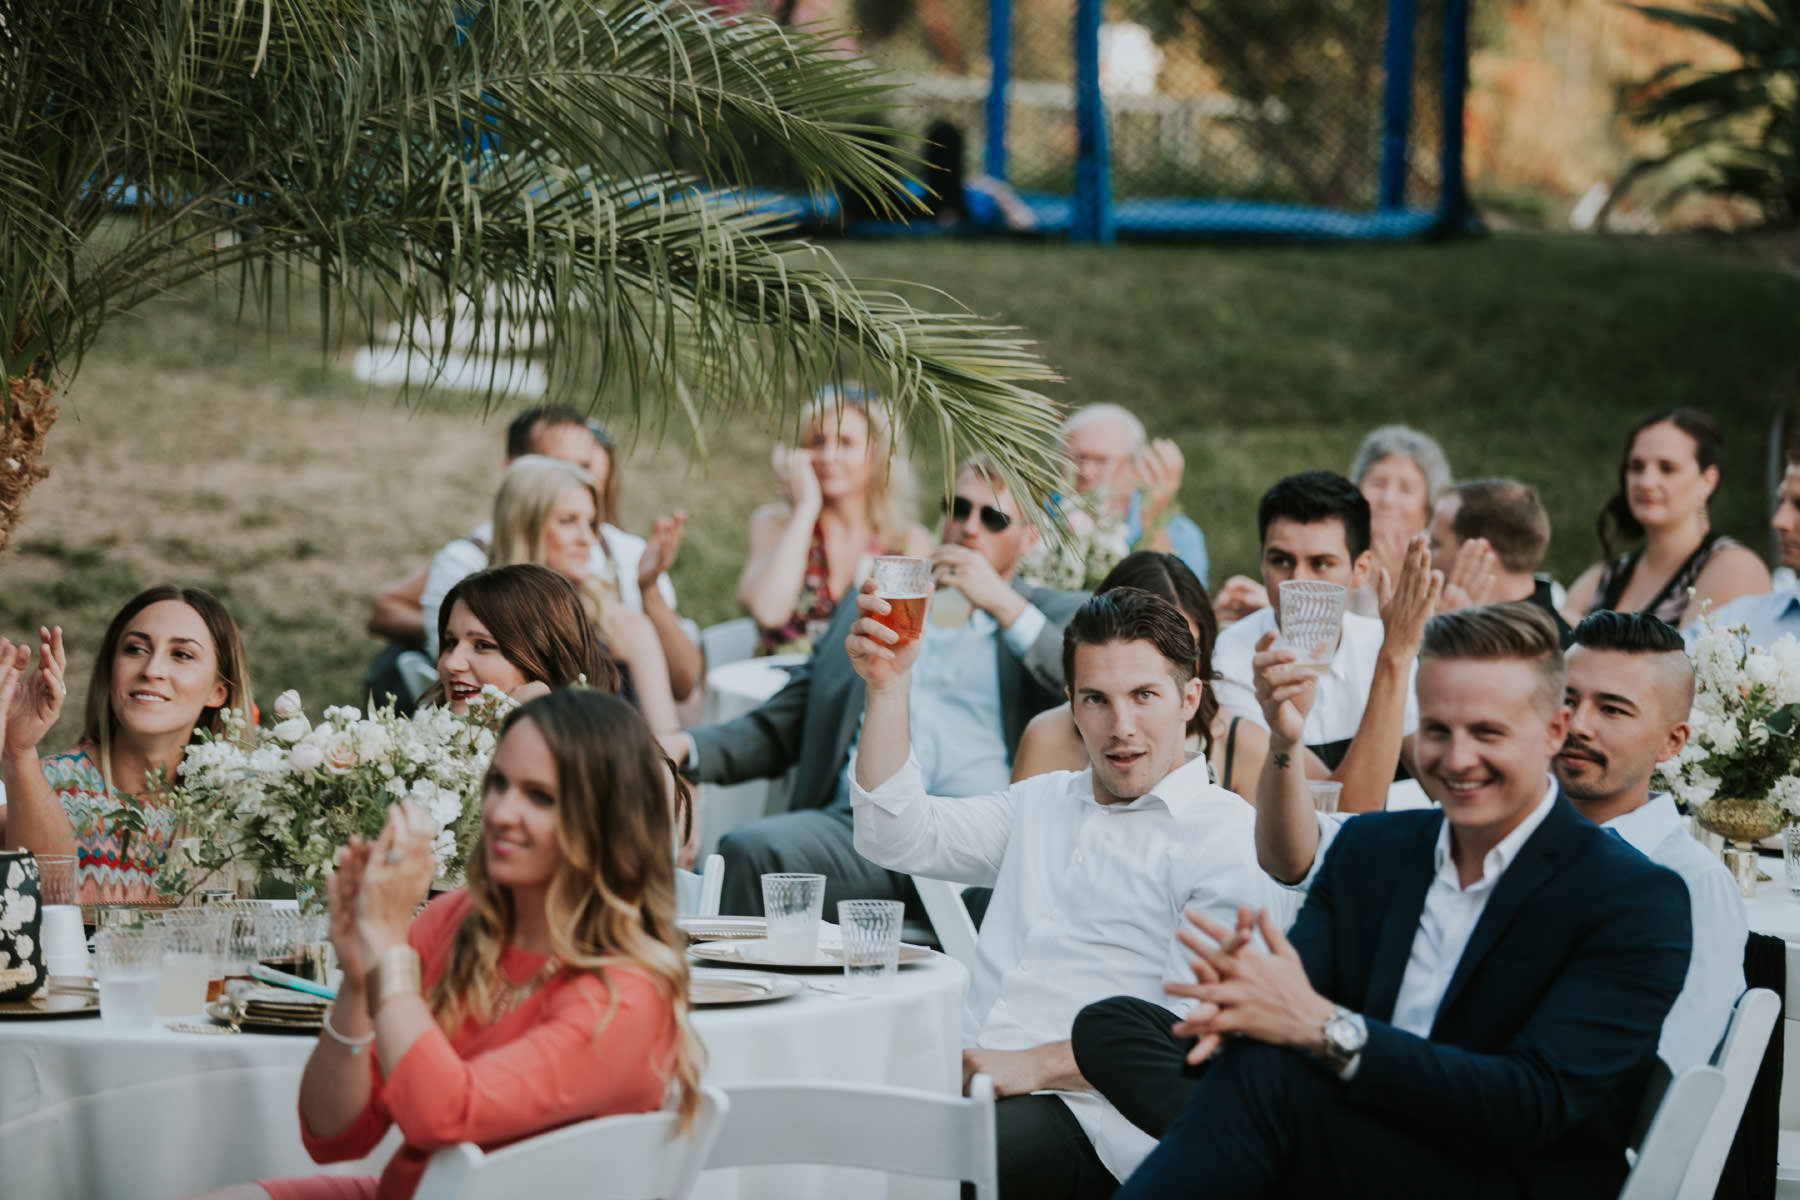 Guests clapping during wedding speeches at San Diego backyard wedding